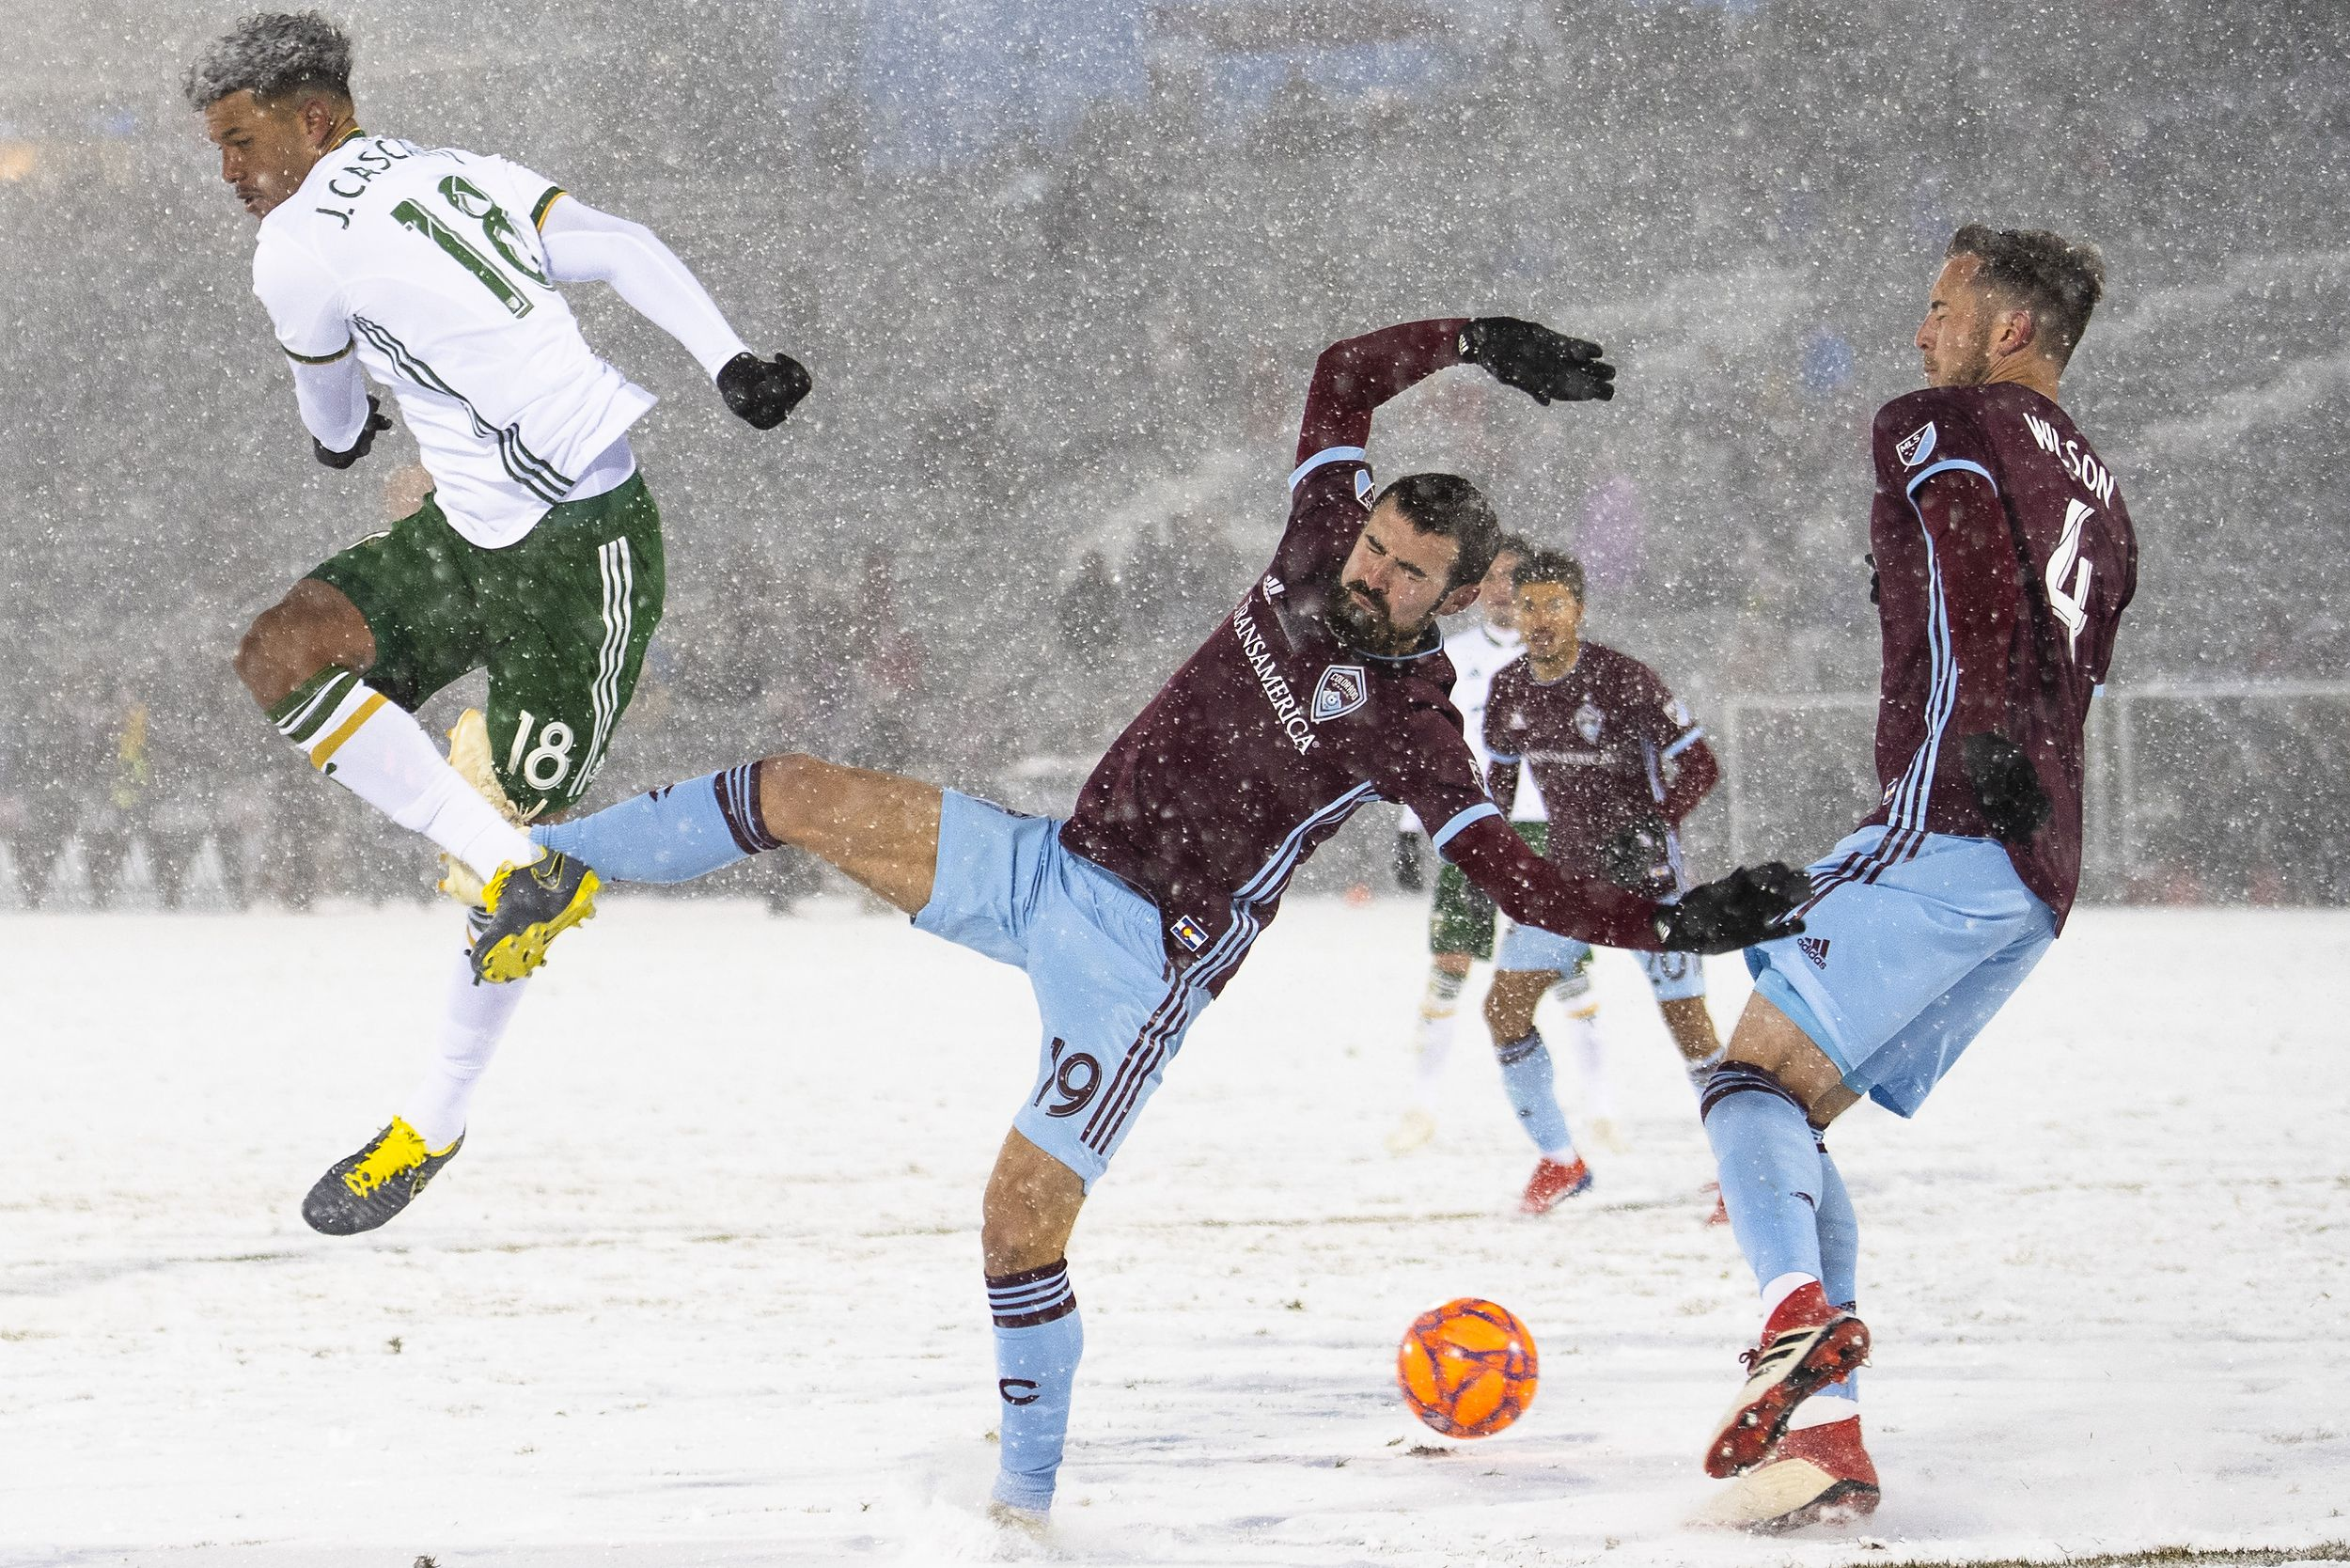 The Portland Timbers and Colorado Rapids in action (in the snow)